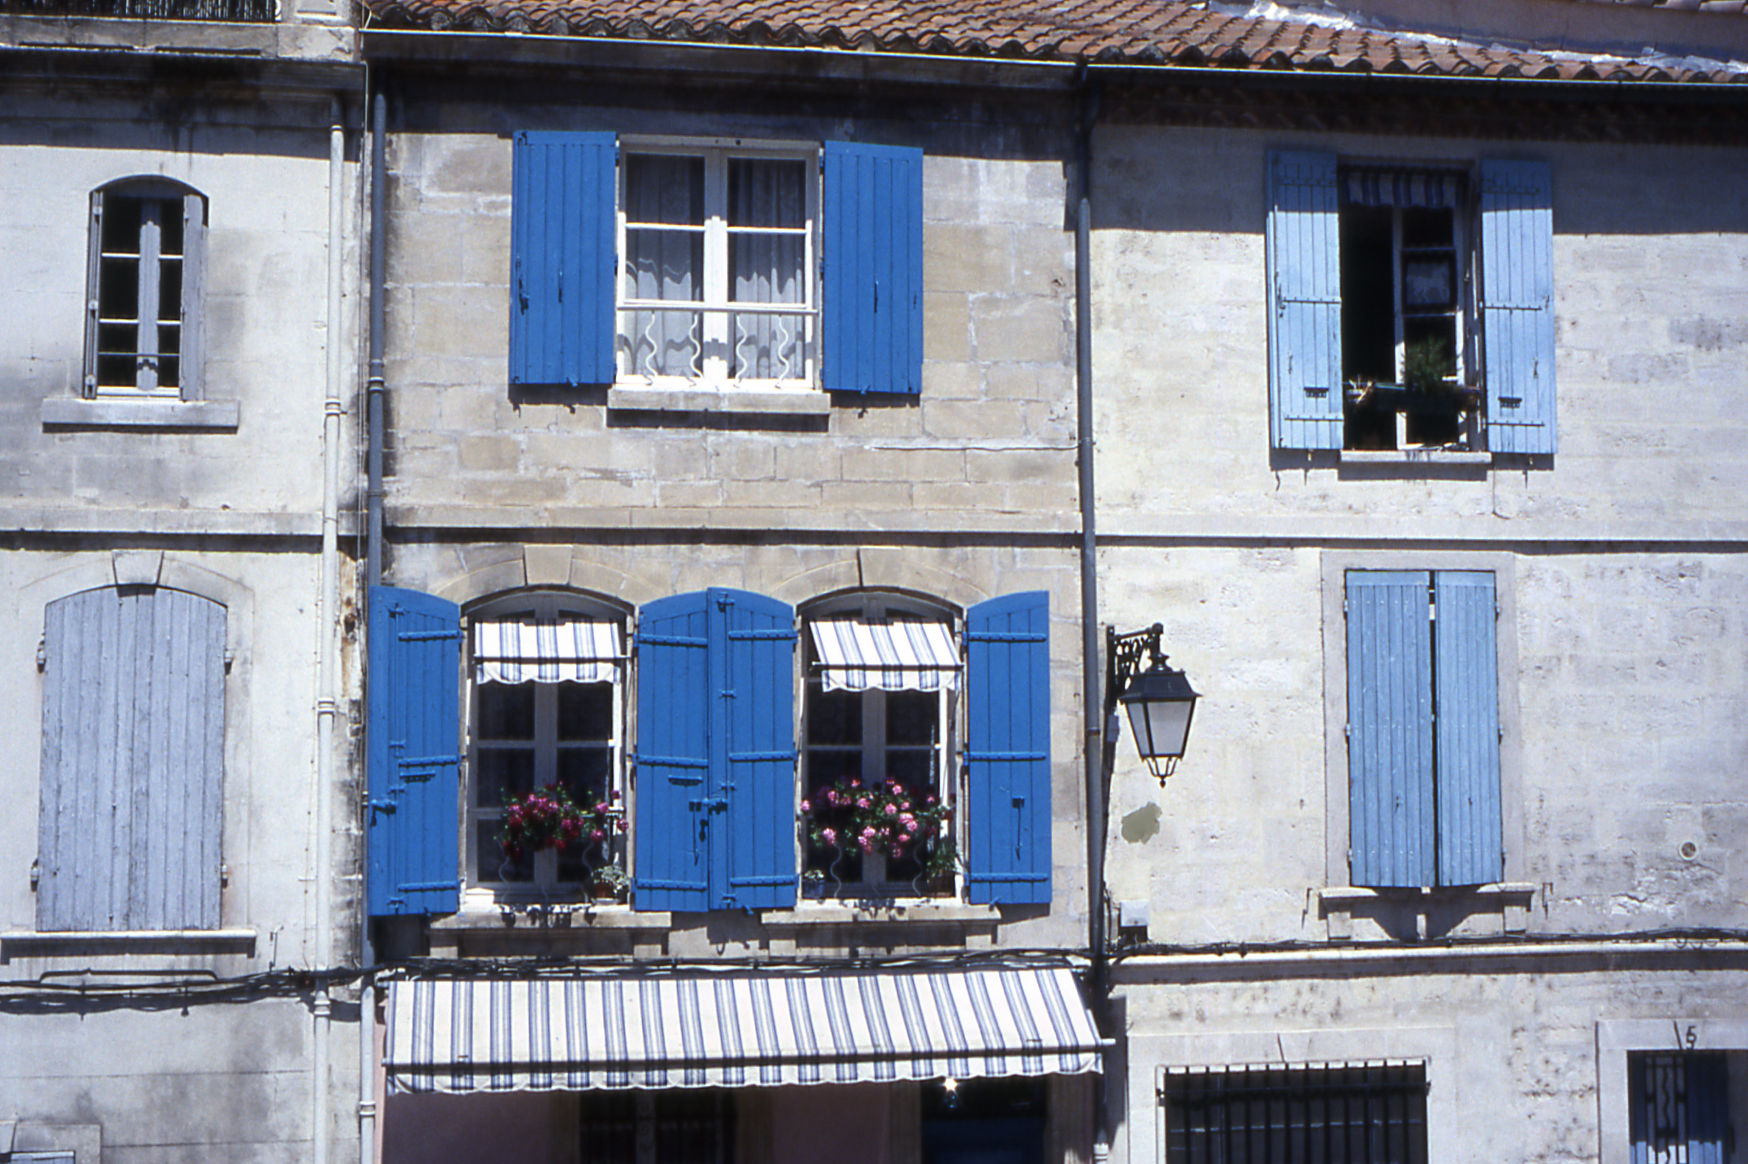 Blue shutters on house in Arles